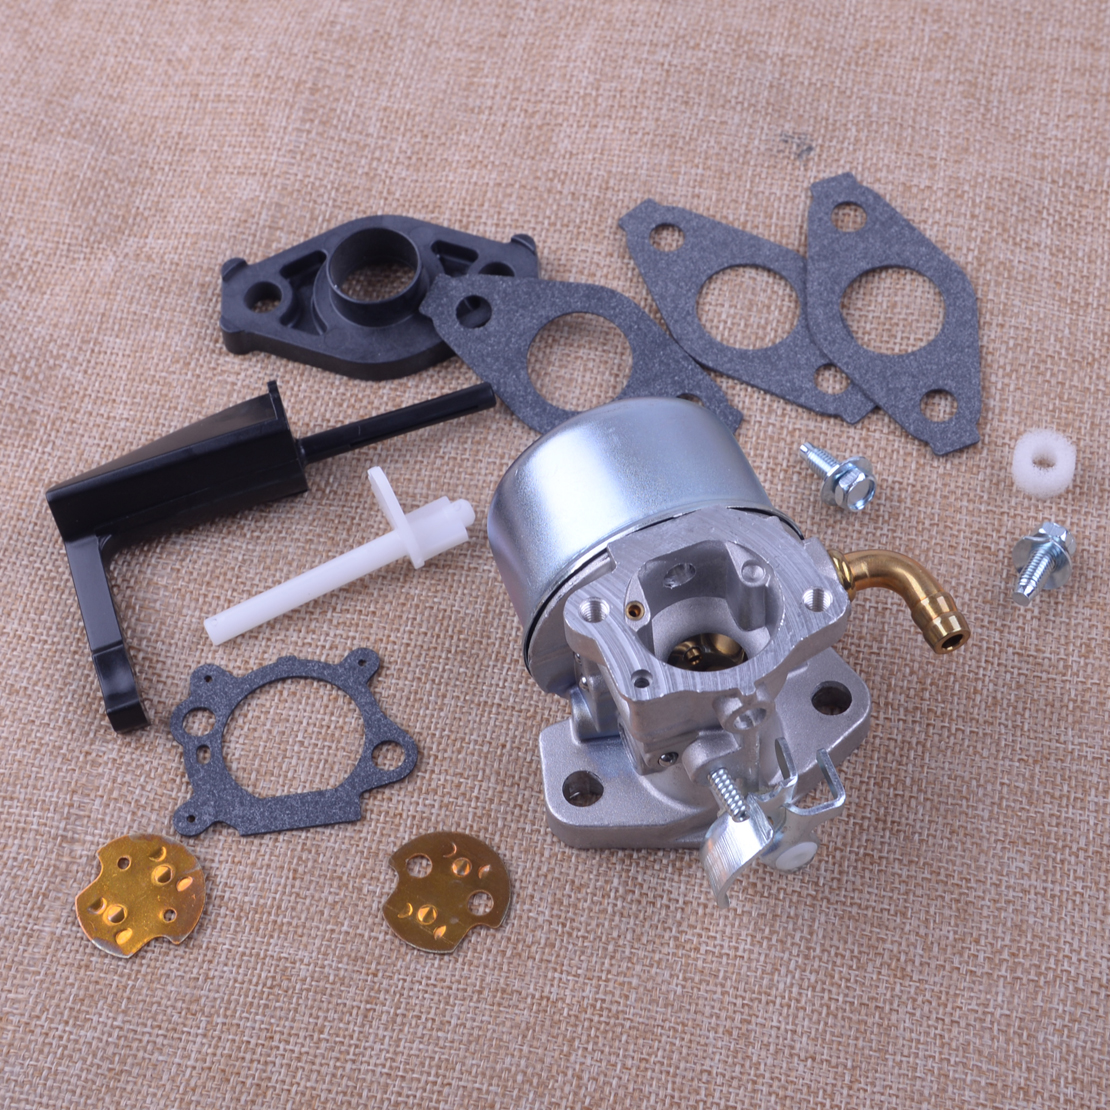 LETAOSK Carb Carburetor Assembly Kit Fit For Briggs Stratton INTEK 206cc 5.5 HP 6.5HP OHV 3500 Watts